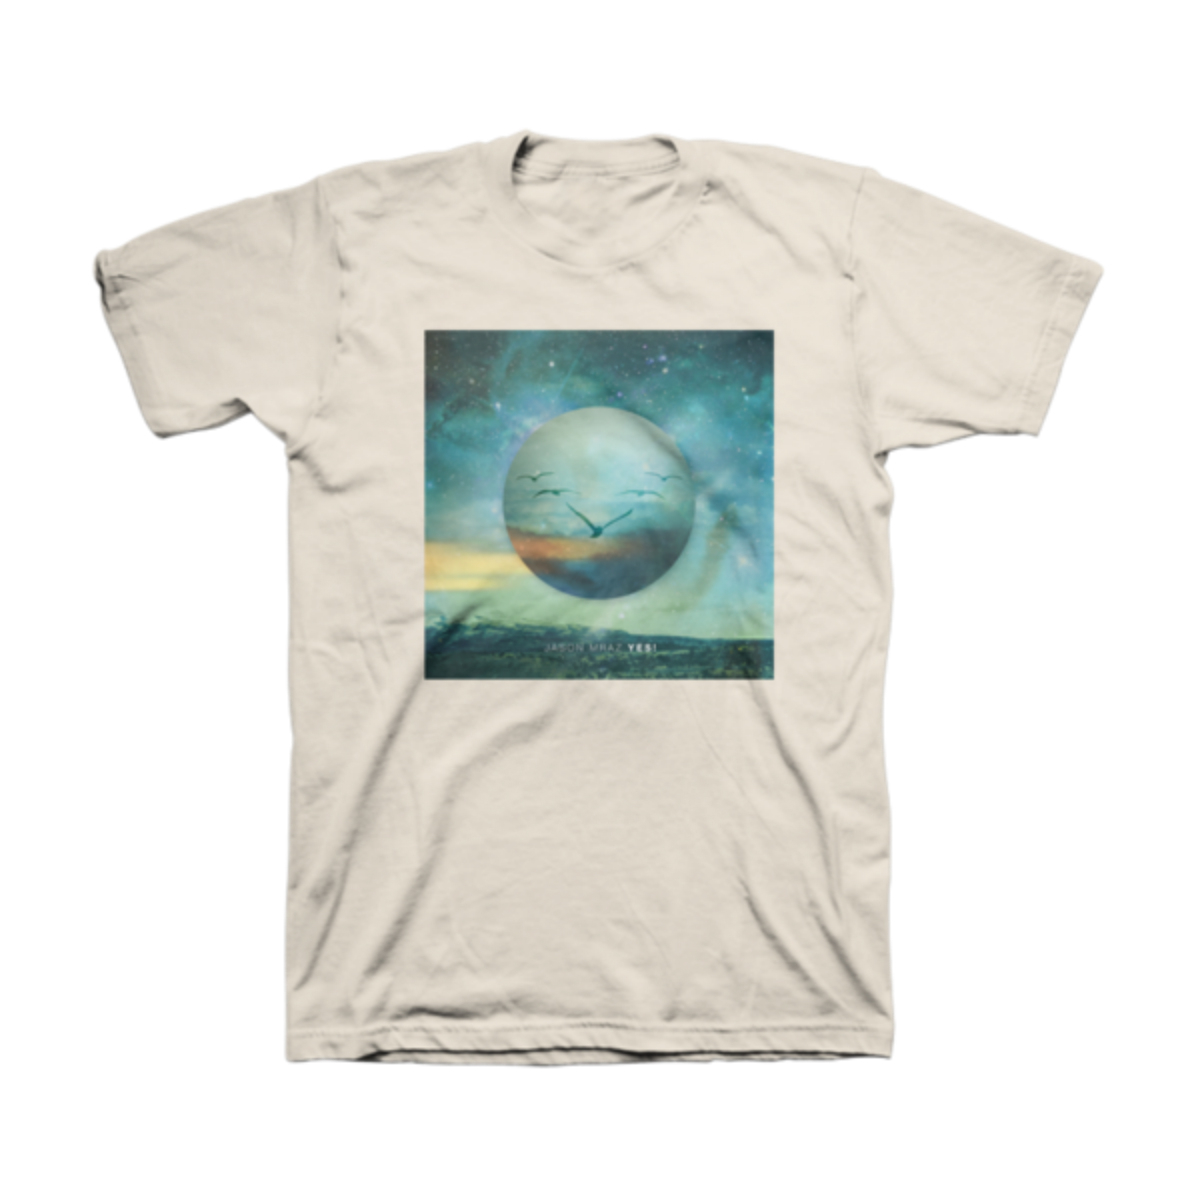 Jason Mraz Yes! Album Cover T-shirt